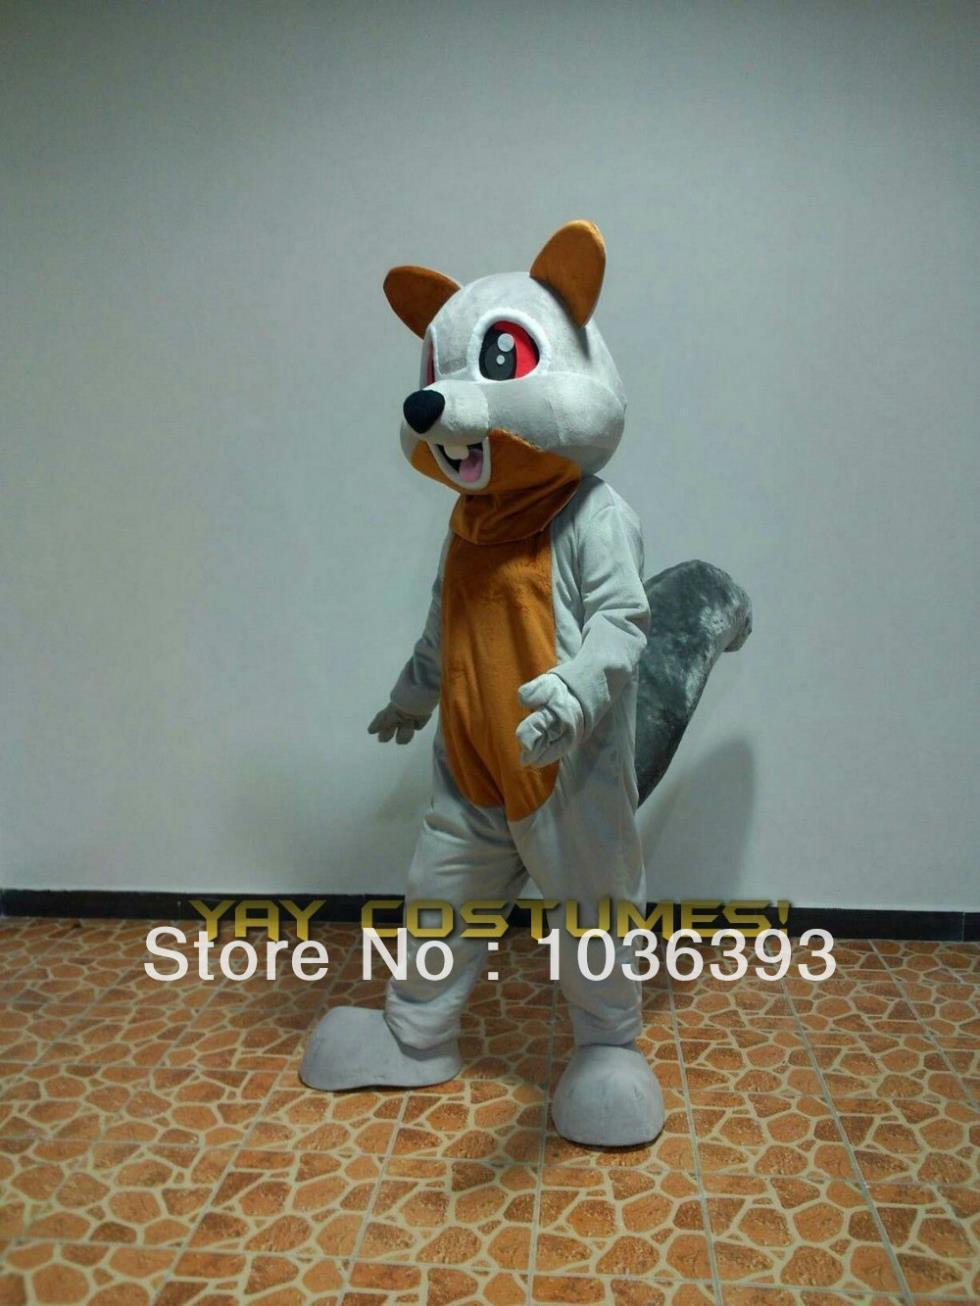 Squirrel 02 Grey Cute mascot costume animal mascot suit carnival costume fancy dress costumes animal mascot party costumes(China (Mainland))